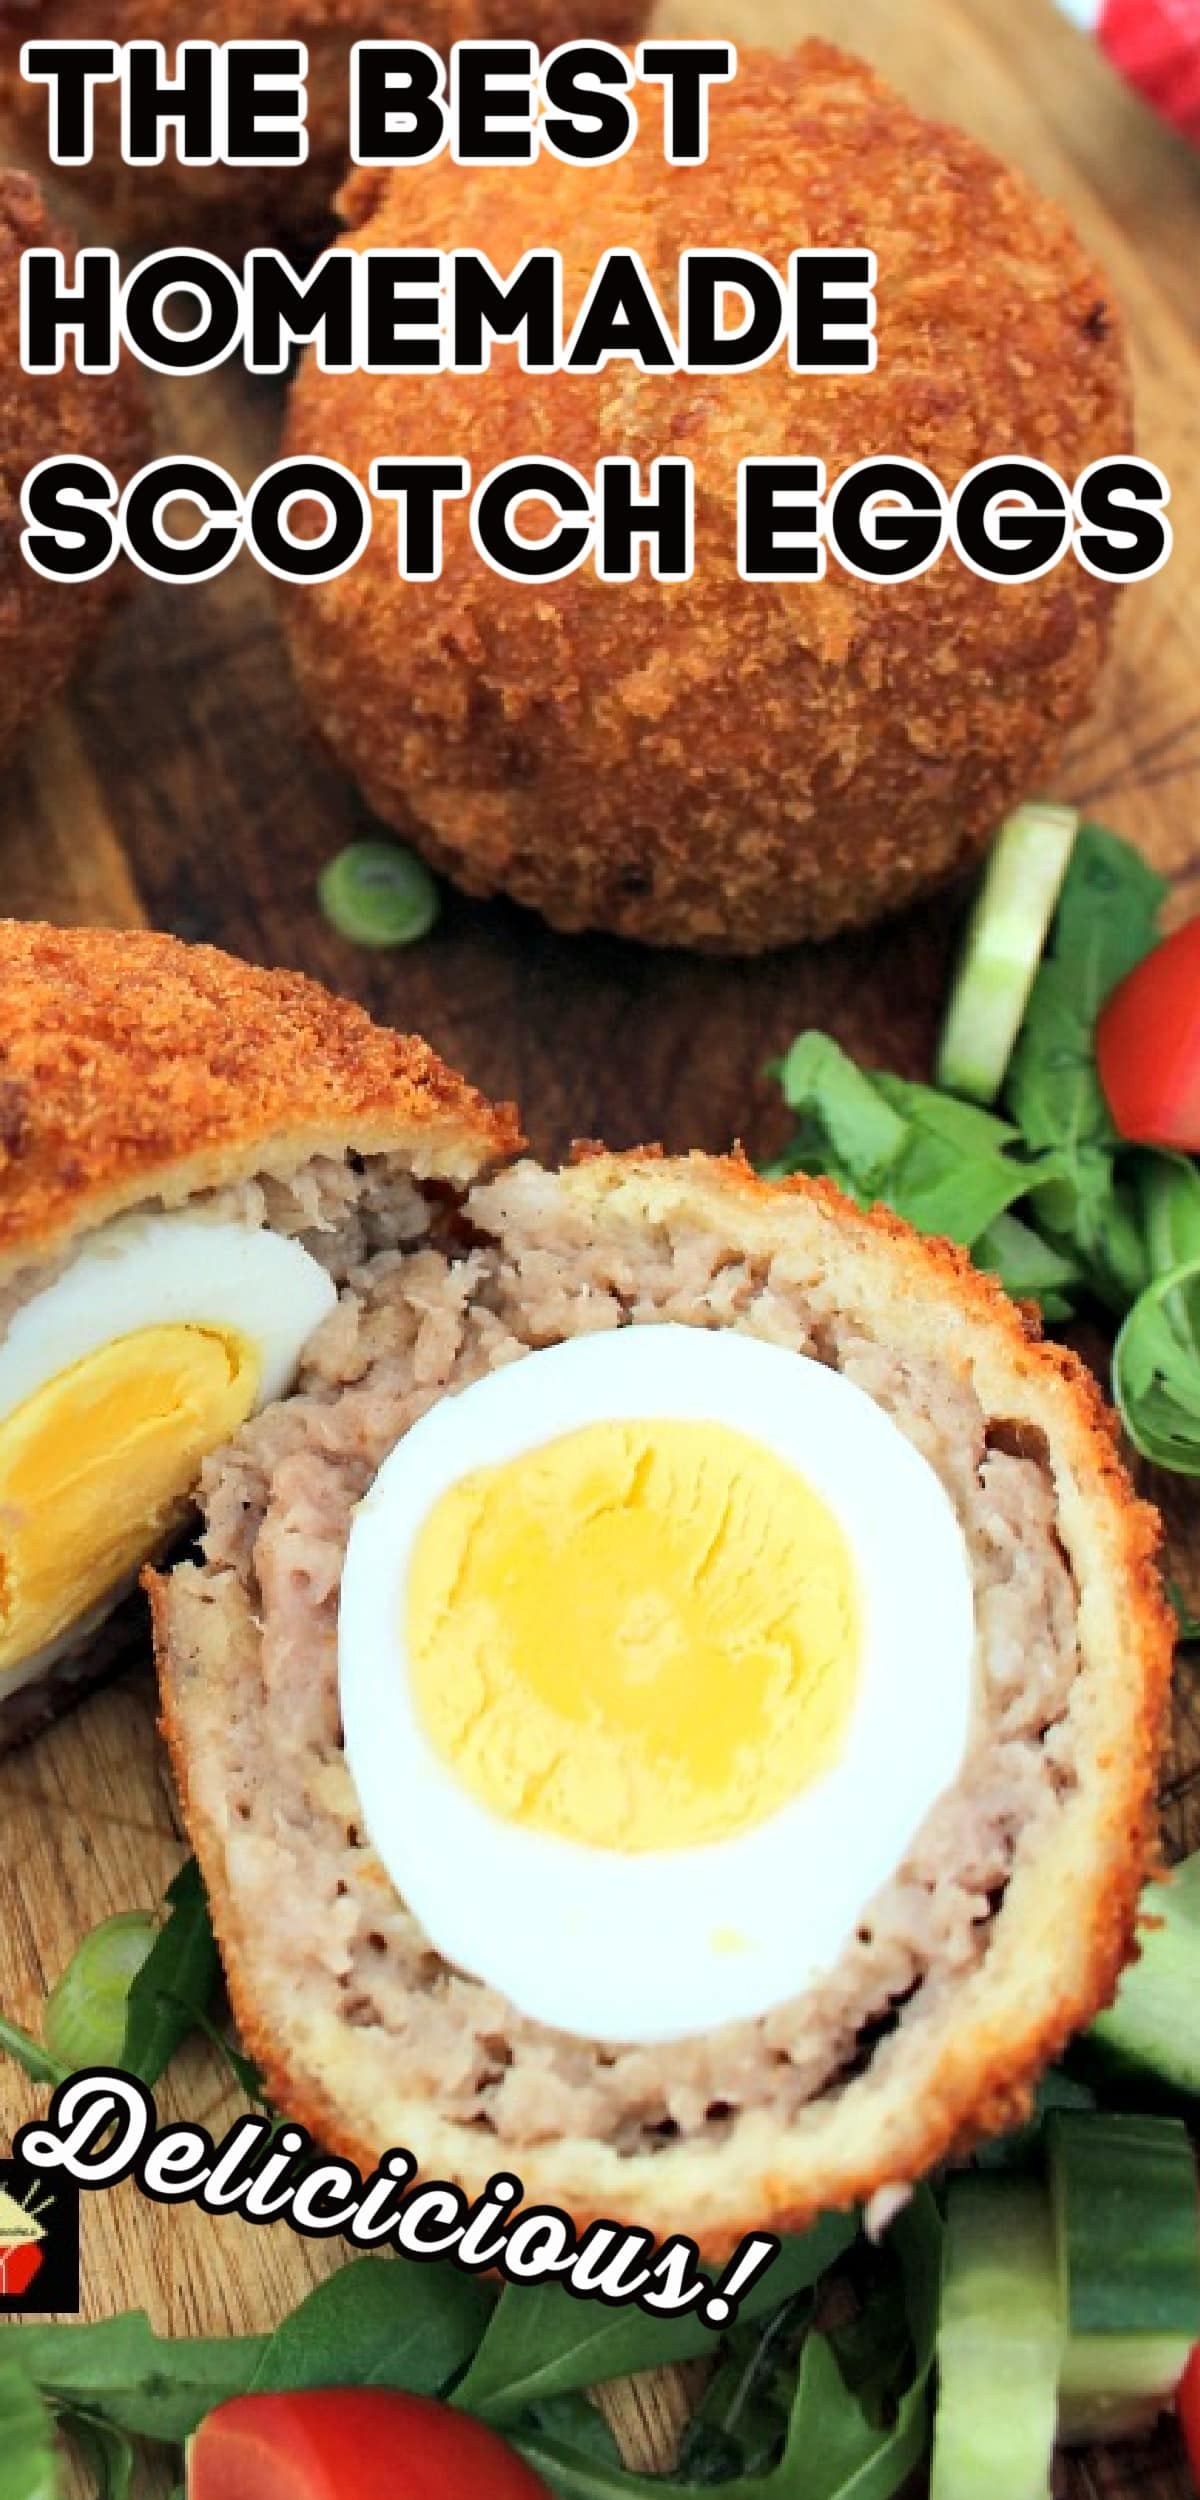 The Best Homemade Scotch Eggs. A popular British snack, perfect for a picnic, breakfast, or any occasion. Delicious eggs wrapped in sausage meat and coated in crispy breadcrumbs.